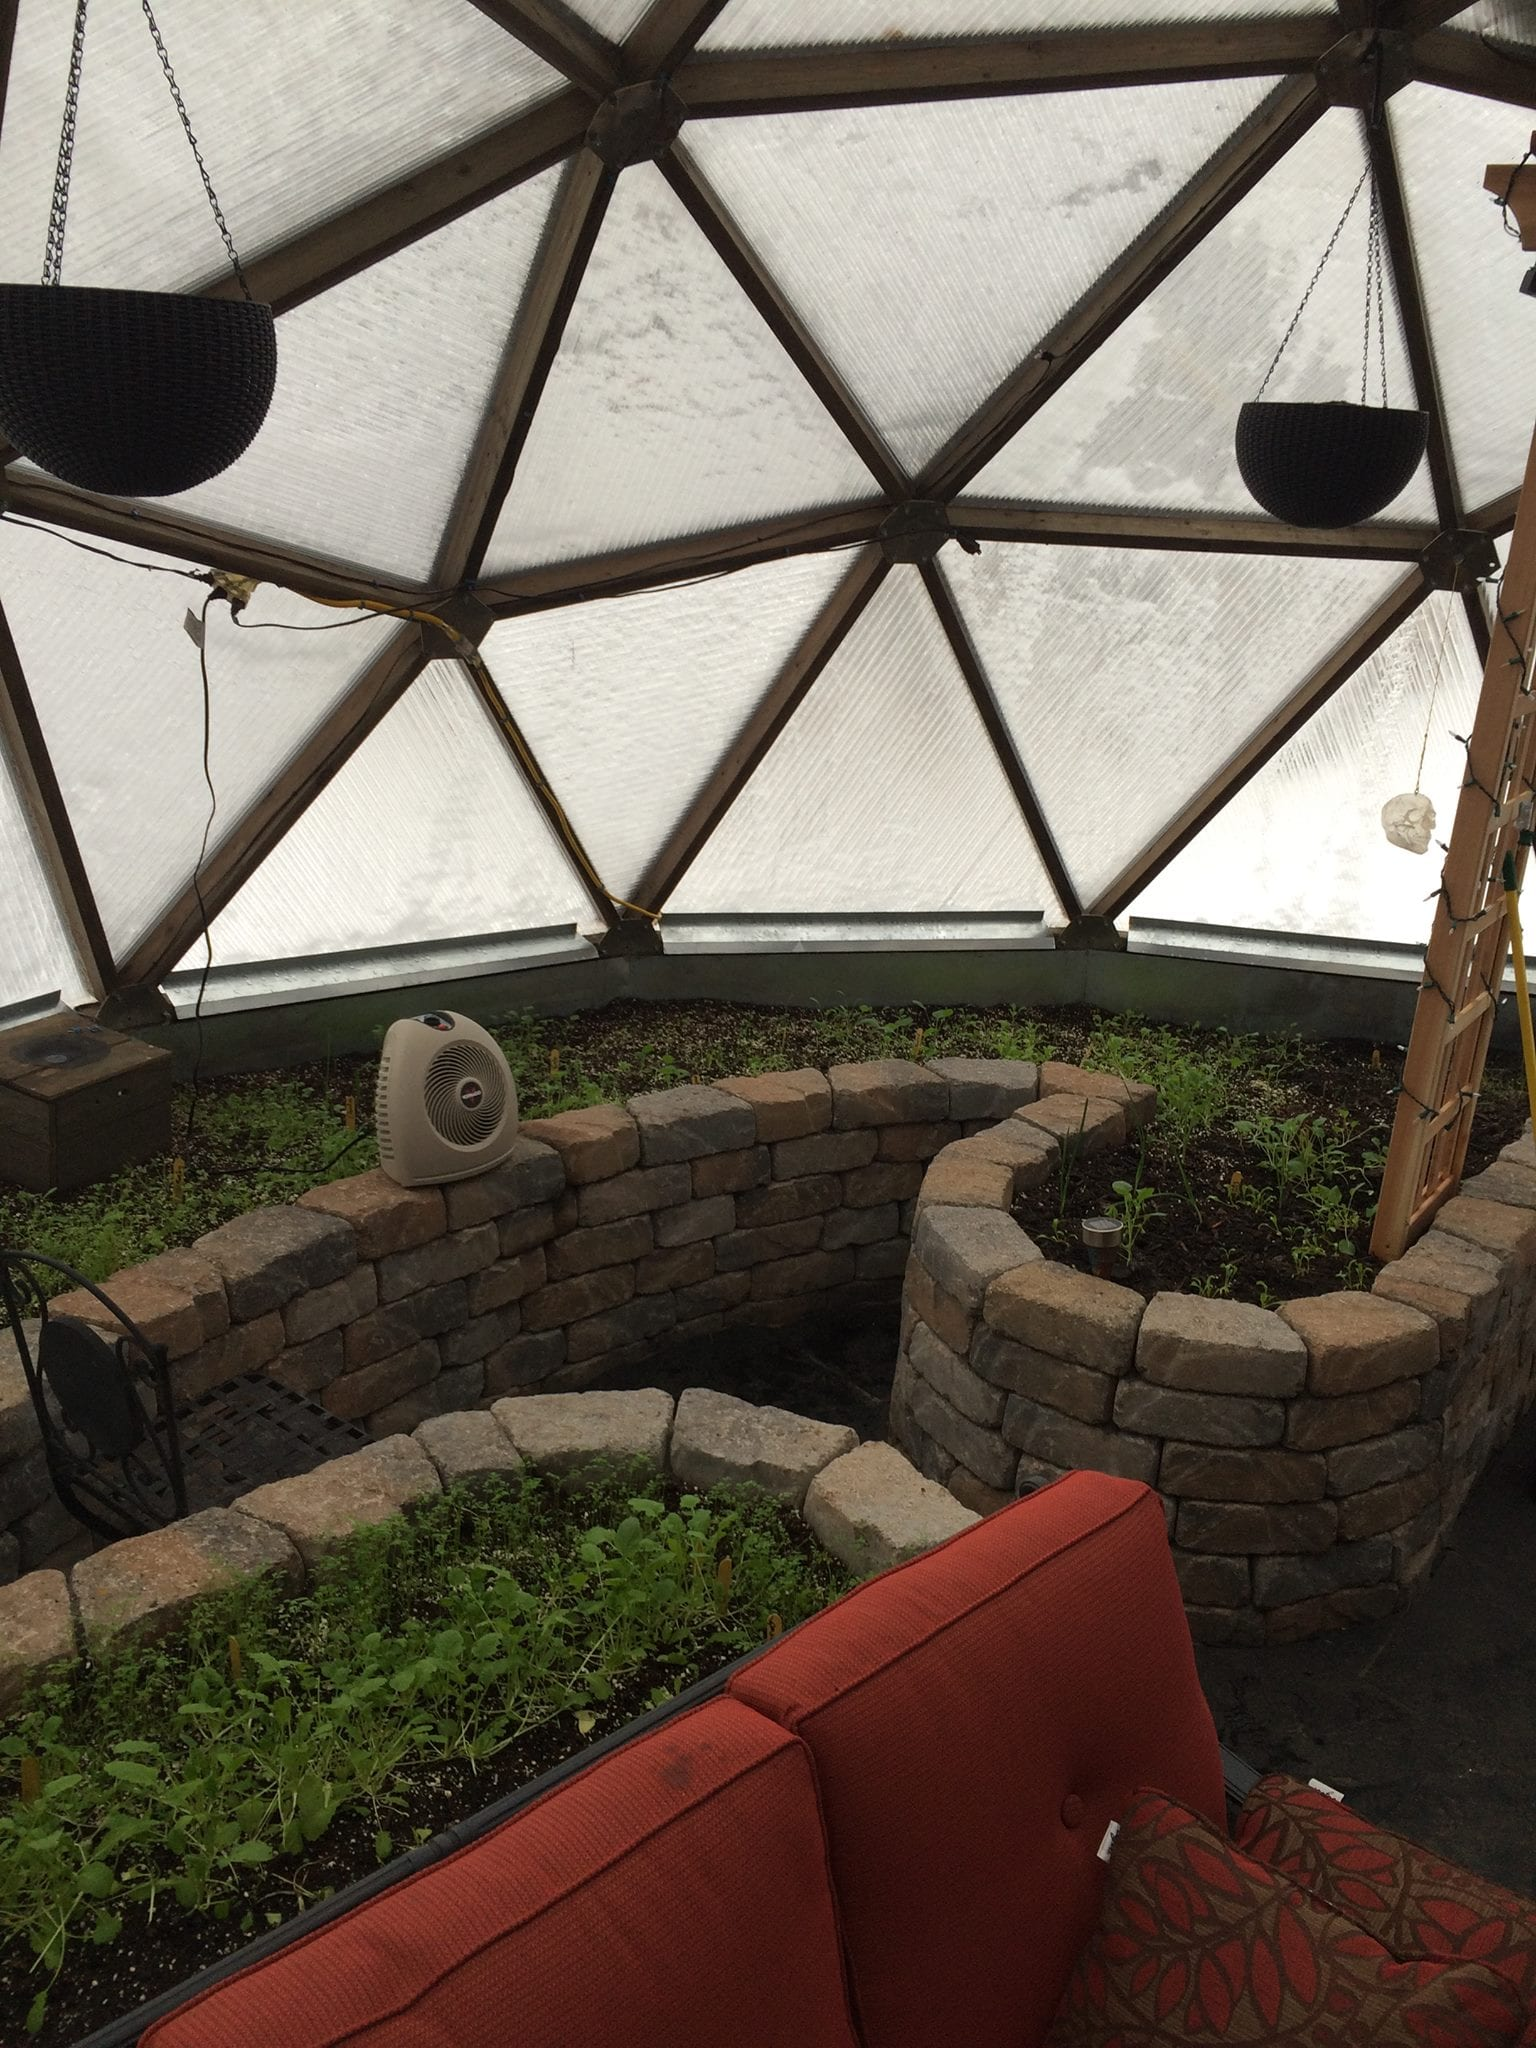 Dome Home Design Ideas: Greenhouse Garden Designs, Greenhouse Gardening